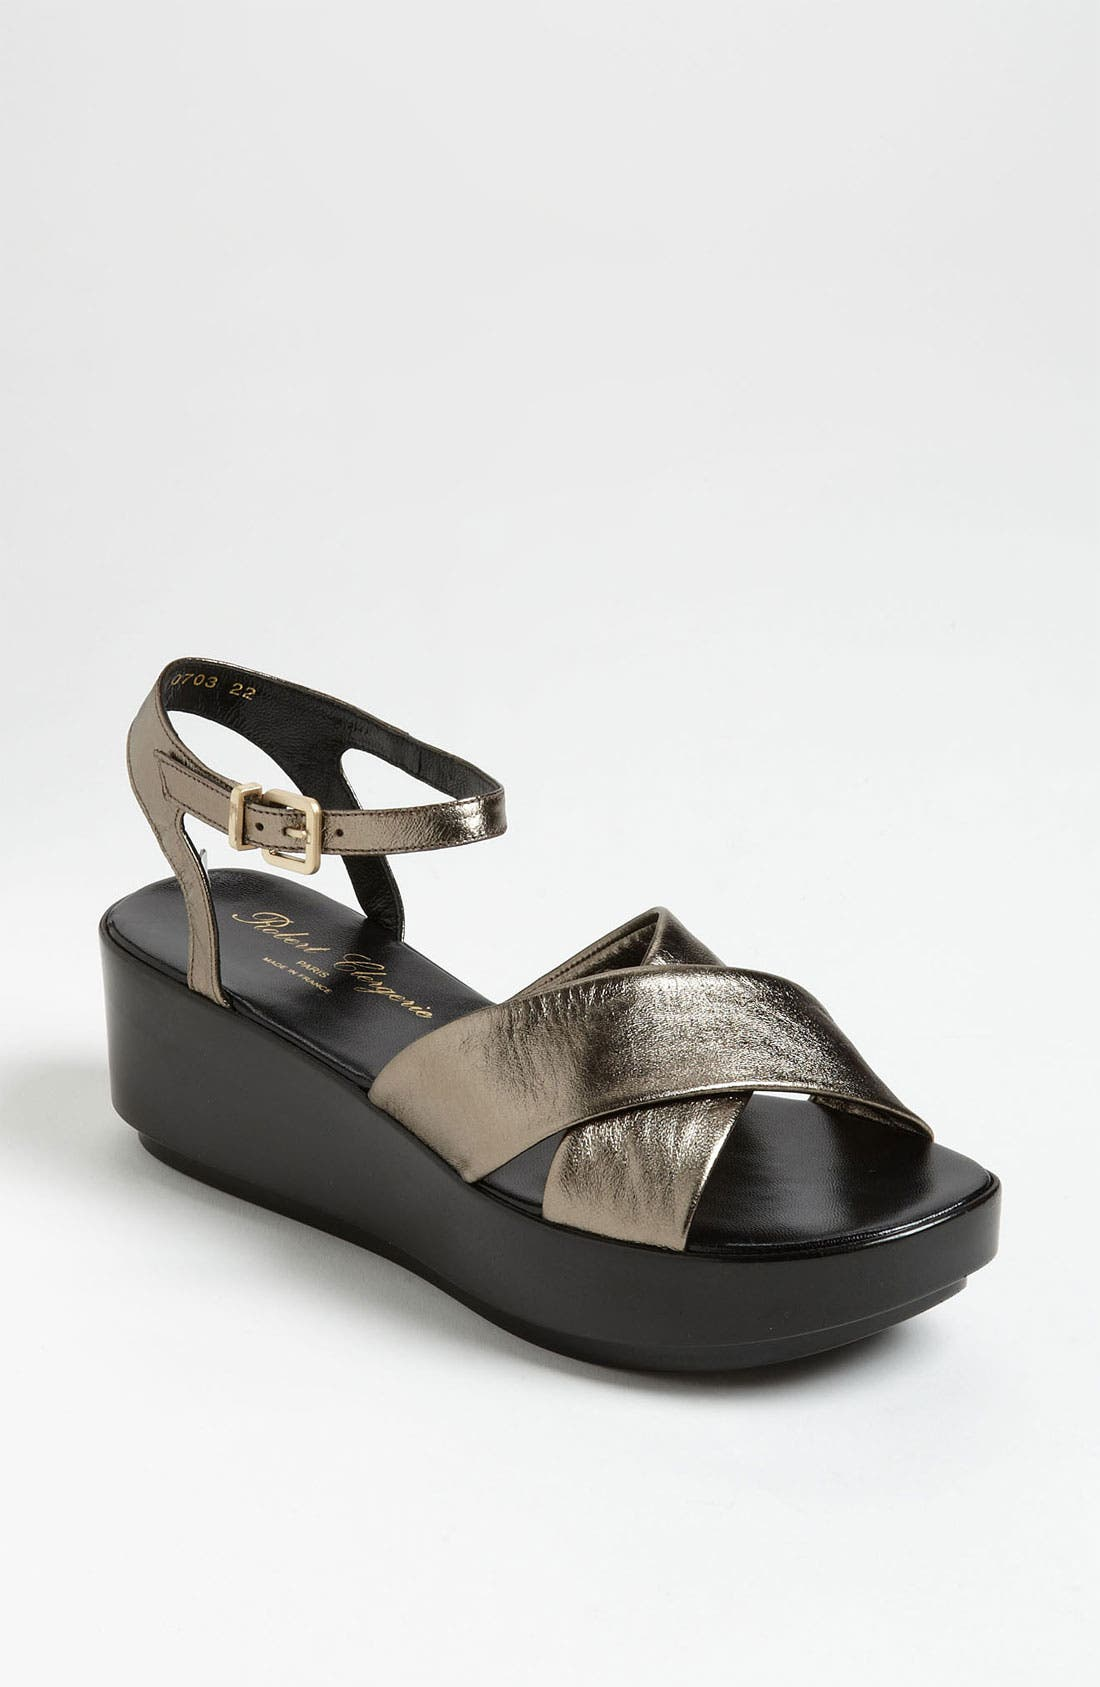 Alternate Image 1 Selected - Robert Clergerie 'Pima' Wedge Sandal